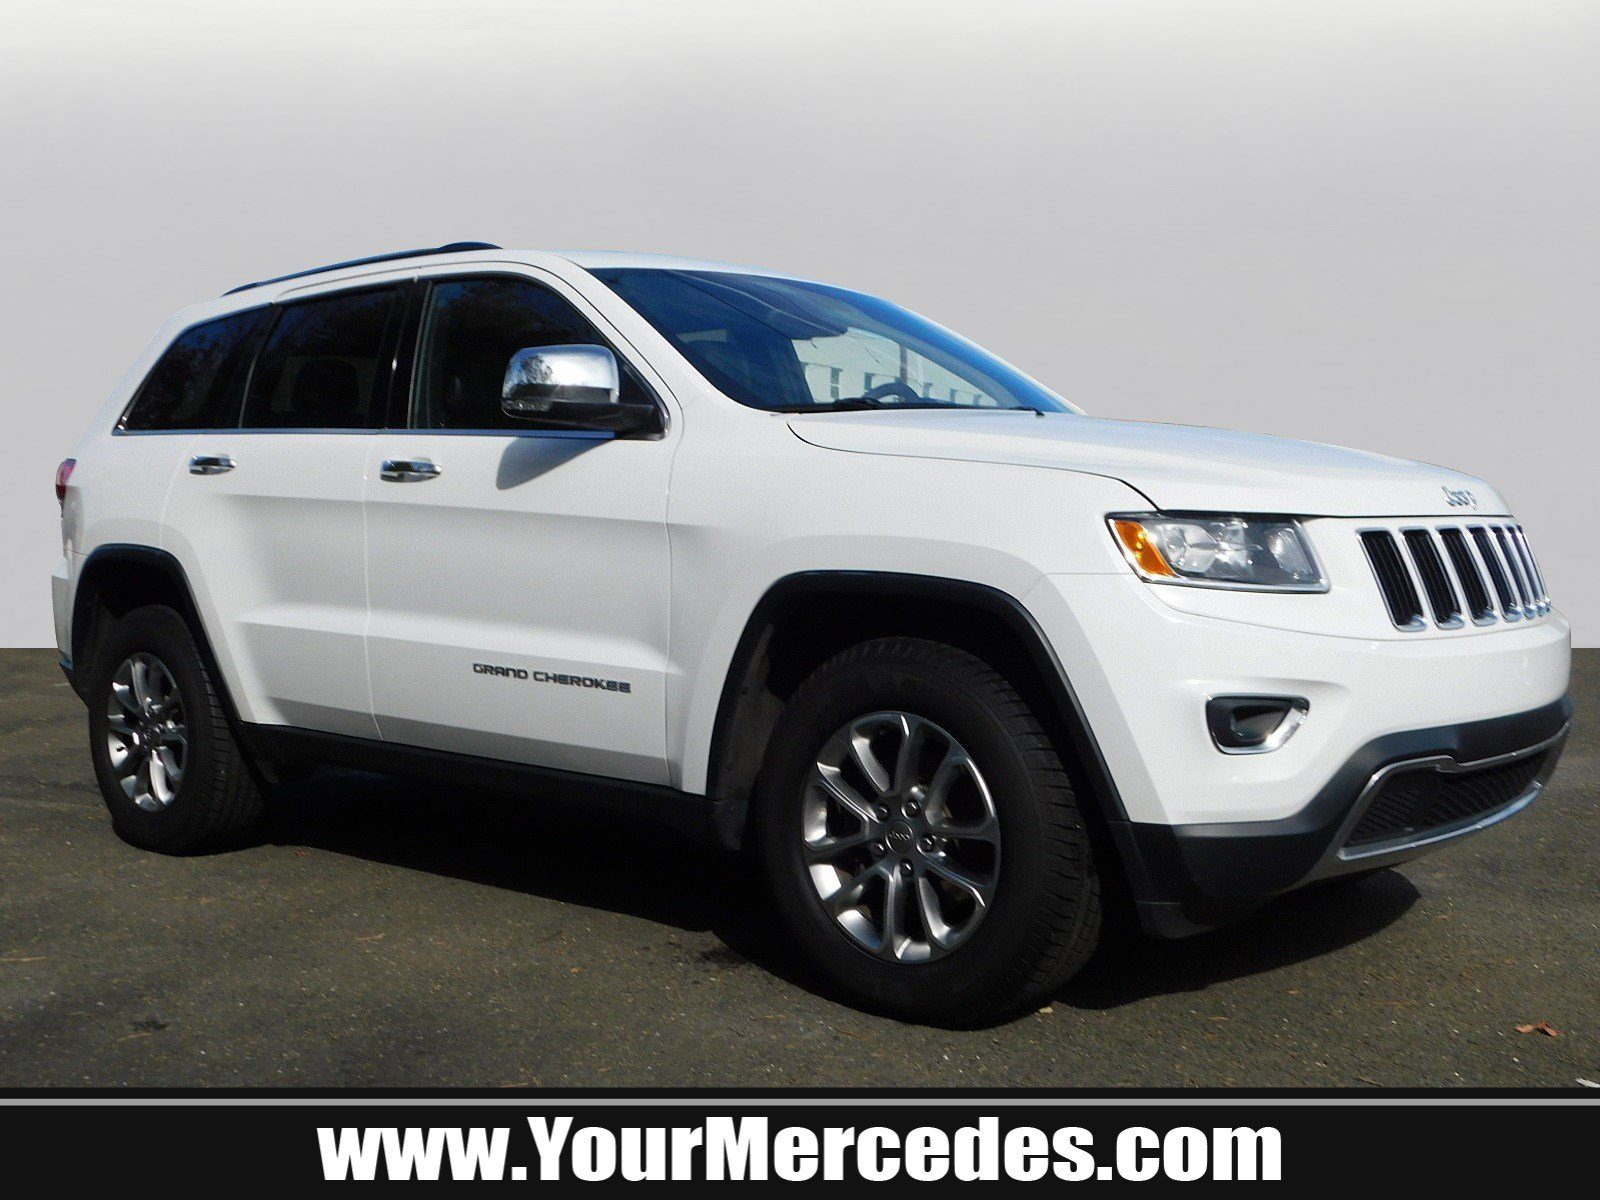 Pre Owned 2015 Jeep Grand Cherokee Limited 4D Sport Utility in Fort